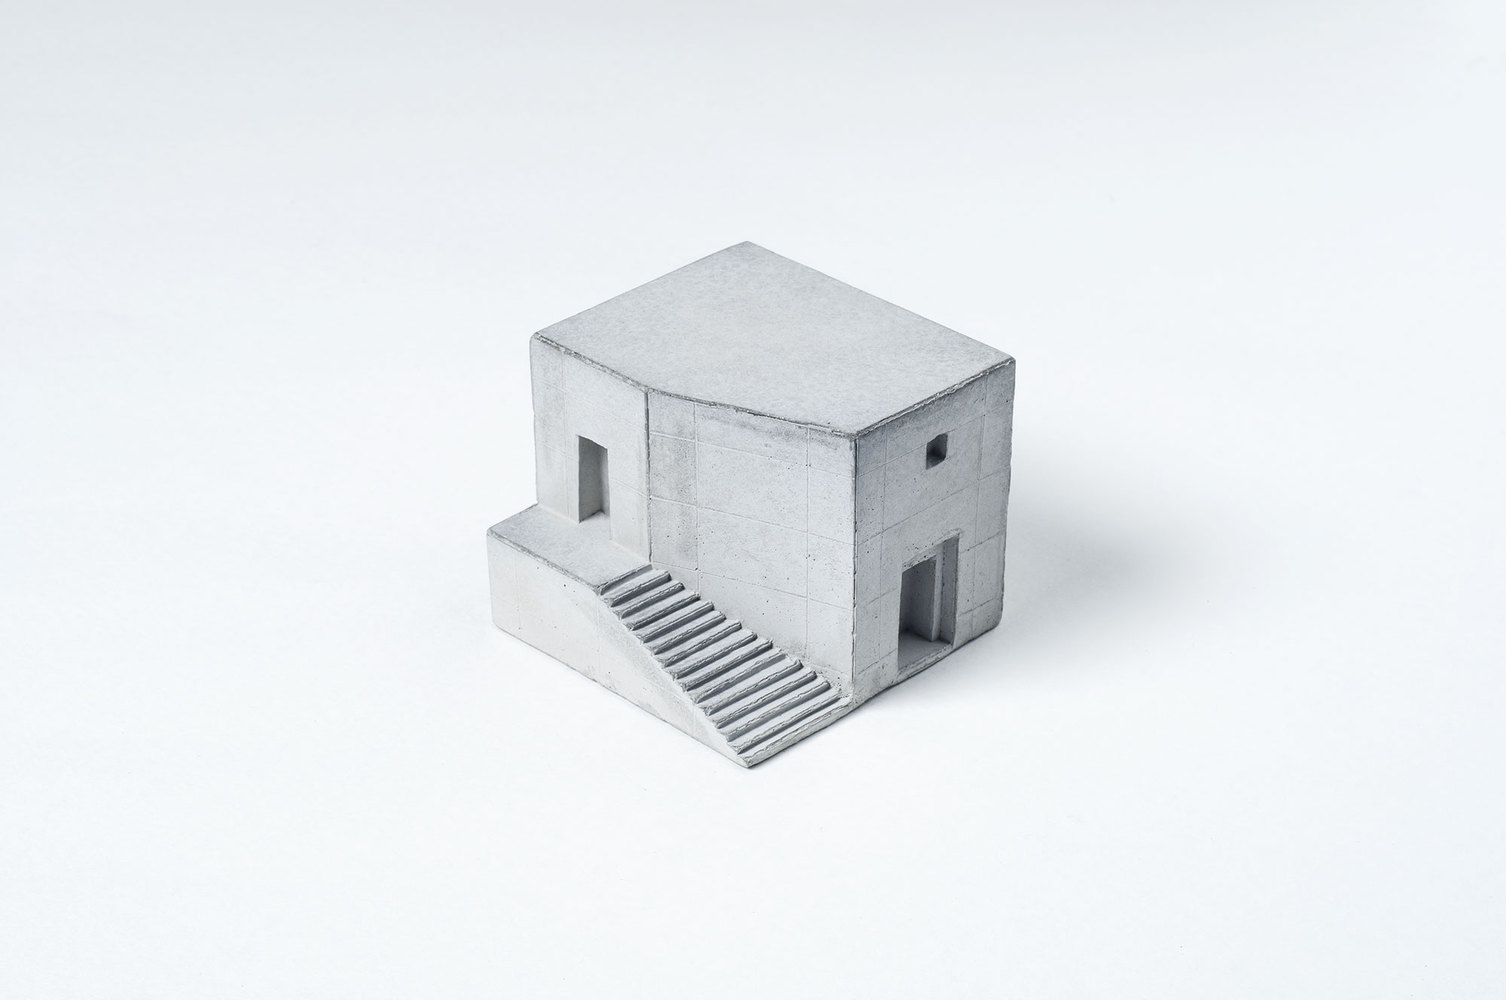 Architectural Gifts 10 gifts for architecture buffs - the spaces